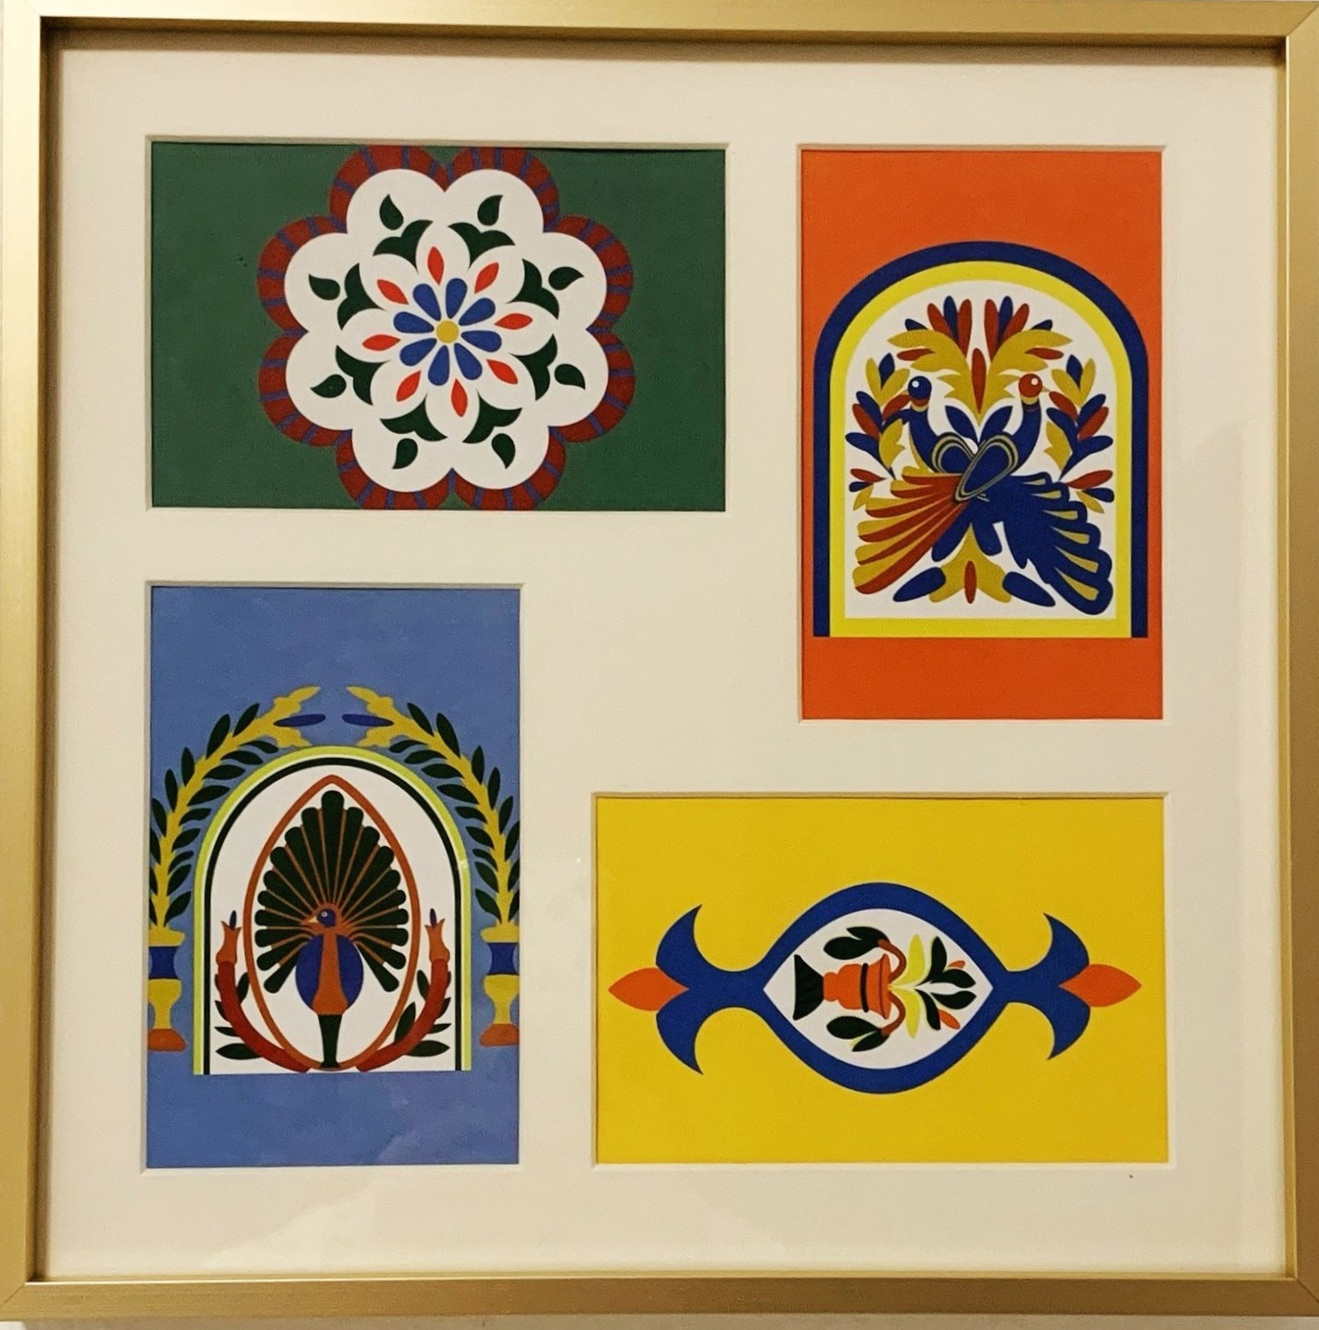 Decorative motif postcards in a collage frame.